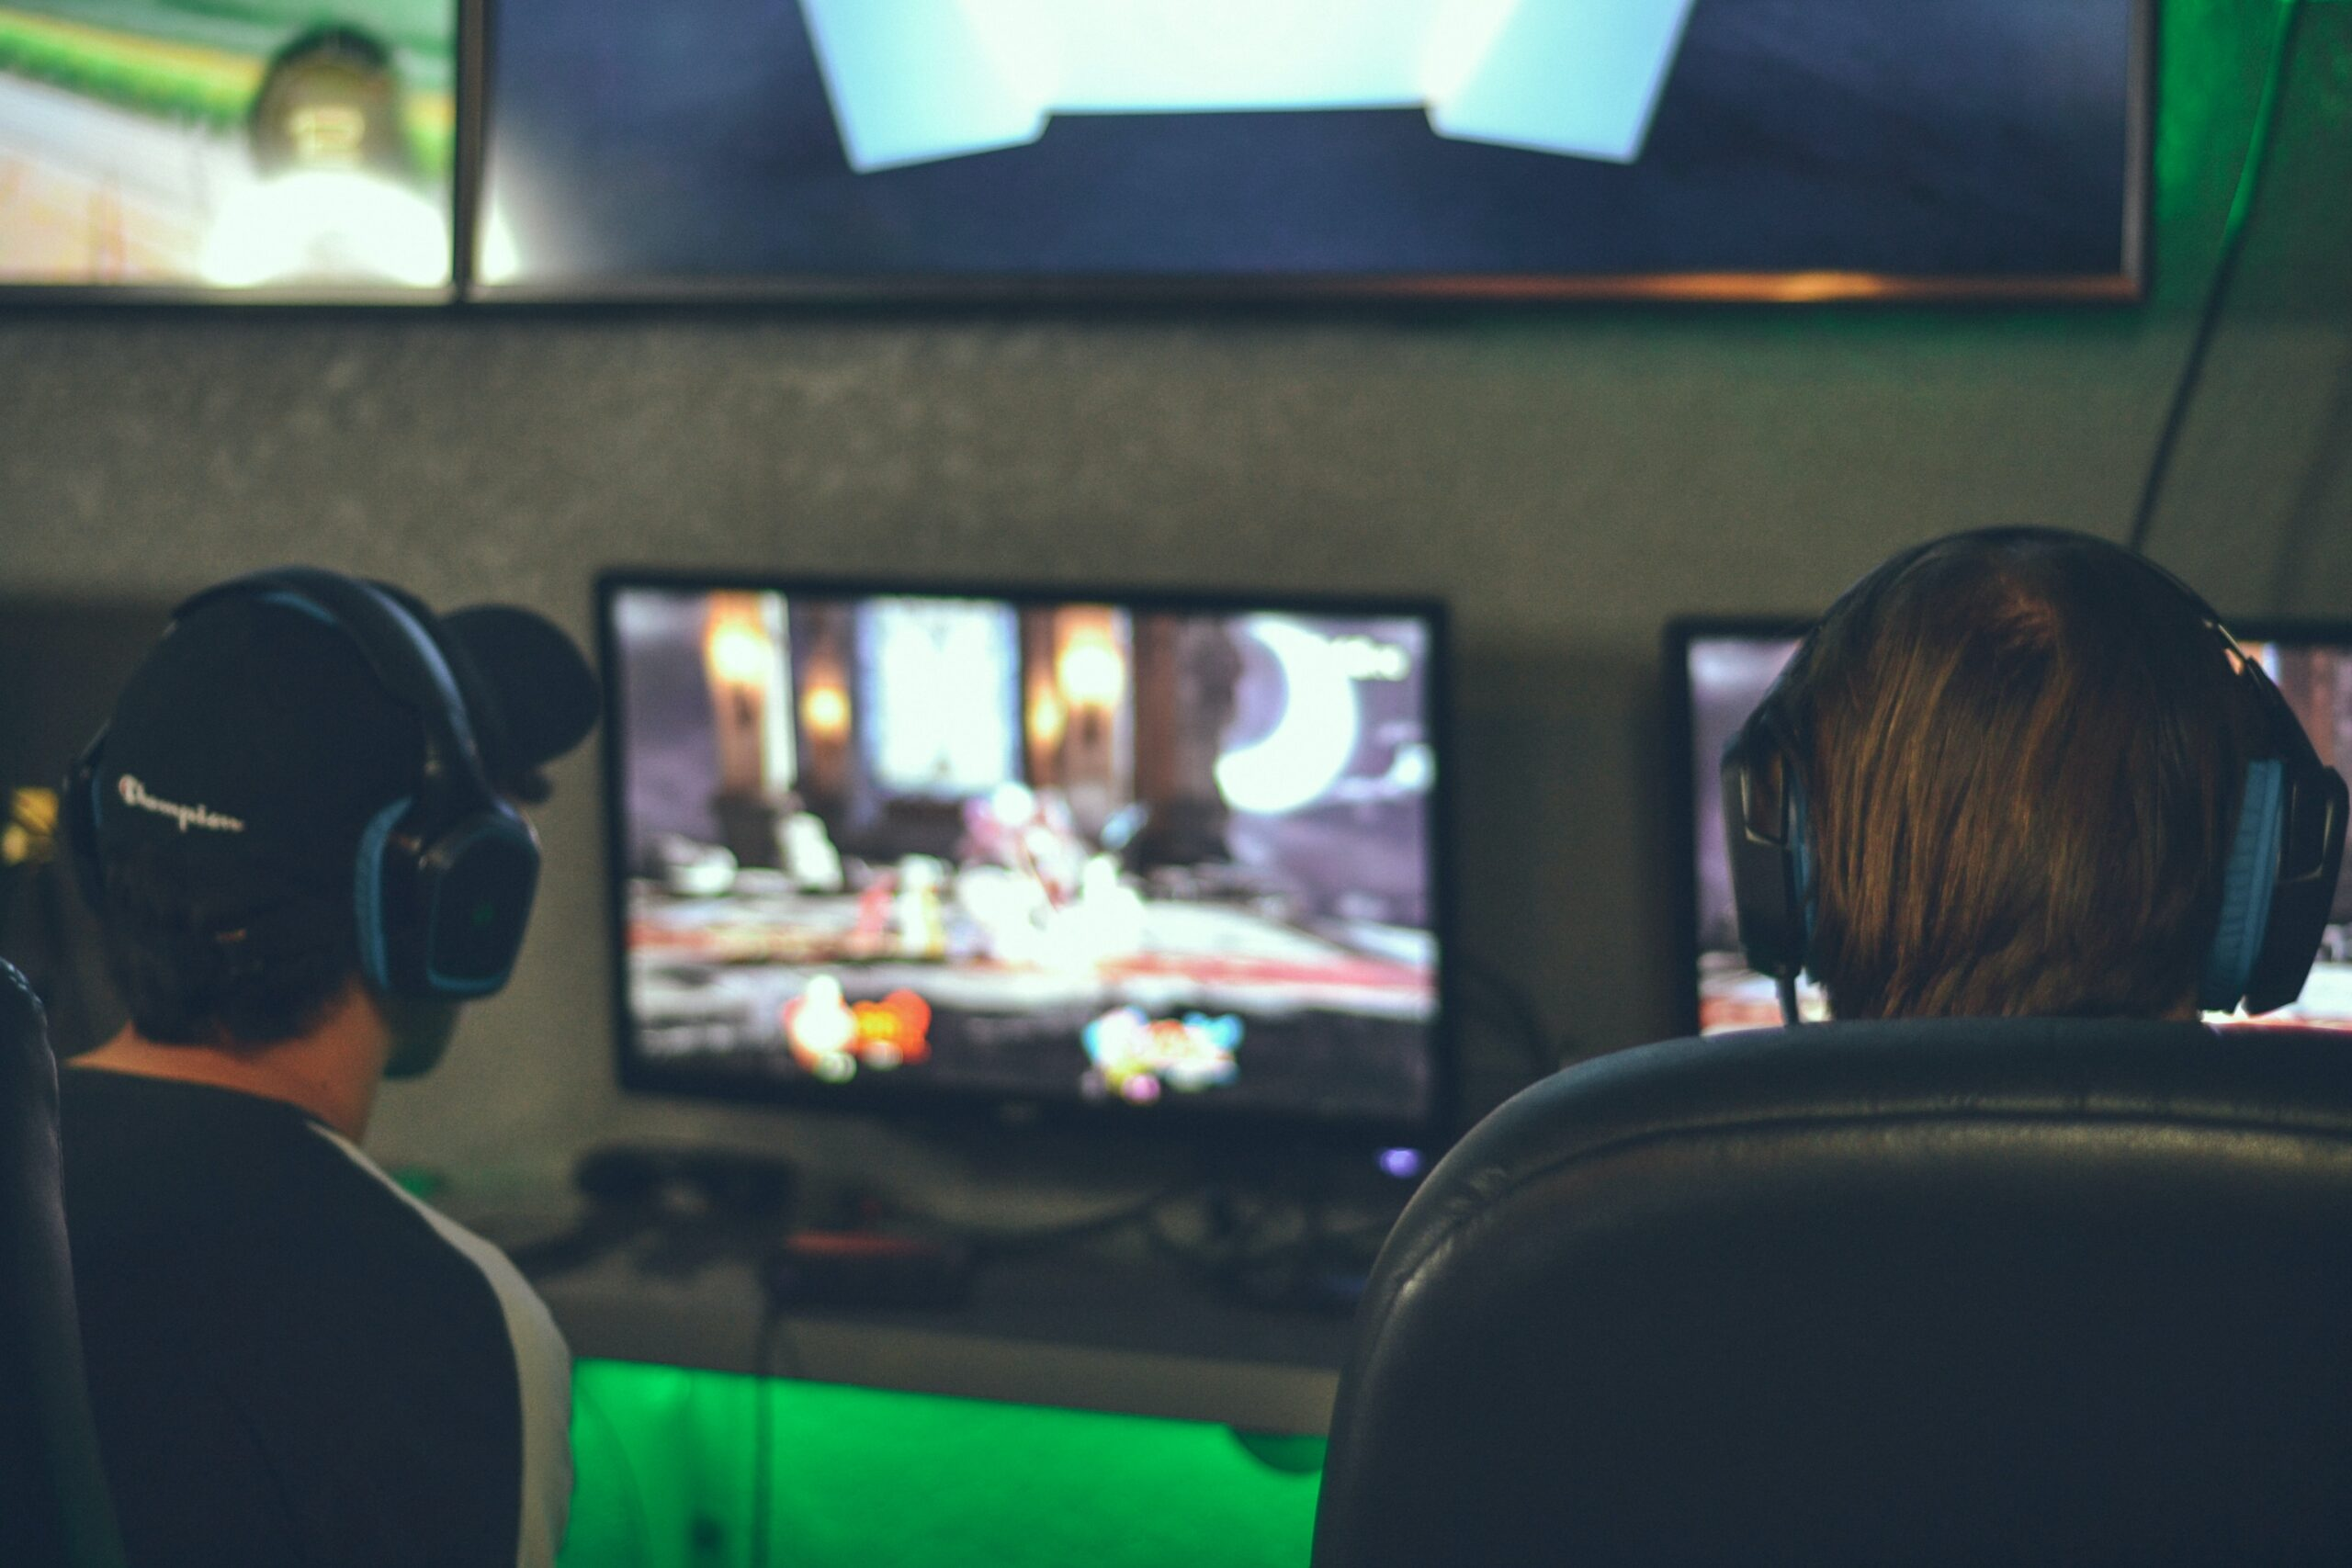 Senate Committee Just Tried to Ban Online Games That Aren't Even Online 8